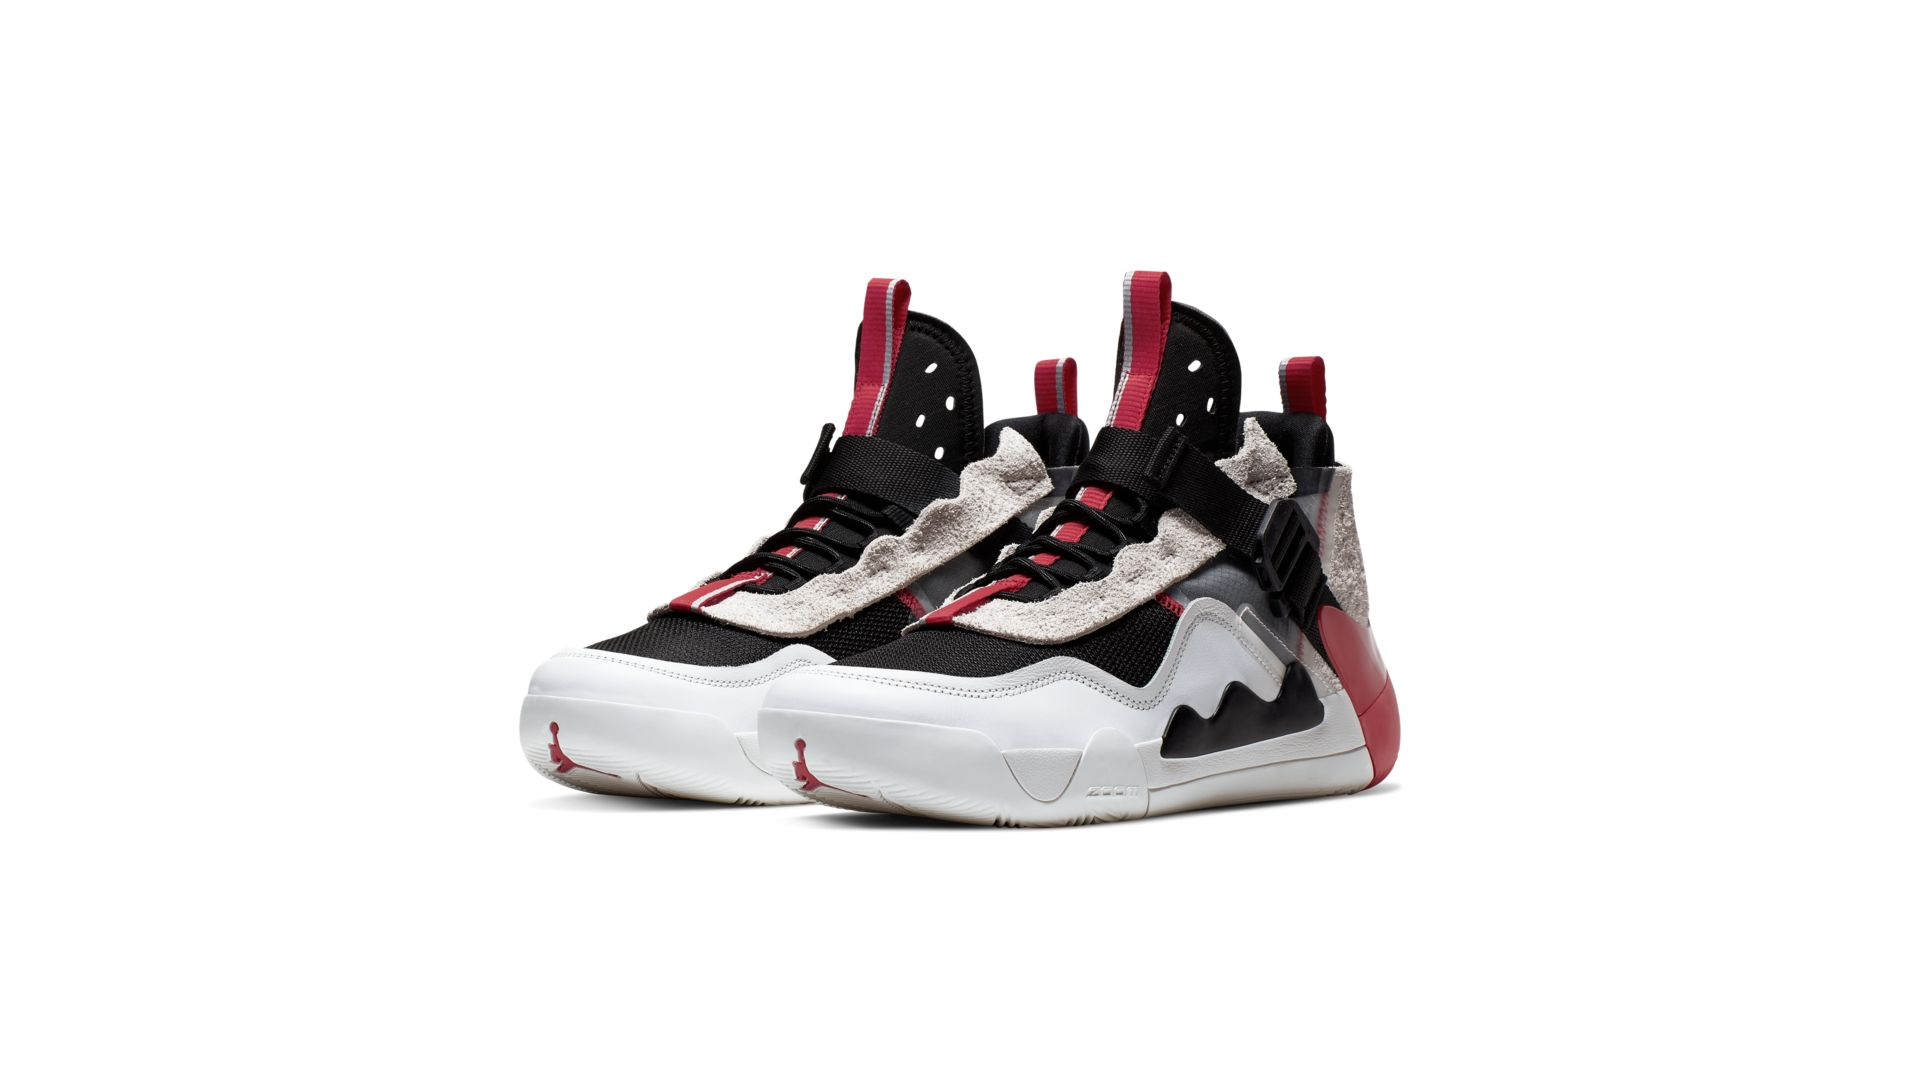 Jordan Defy White Black Red (CJ7698-106)